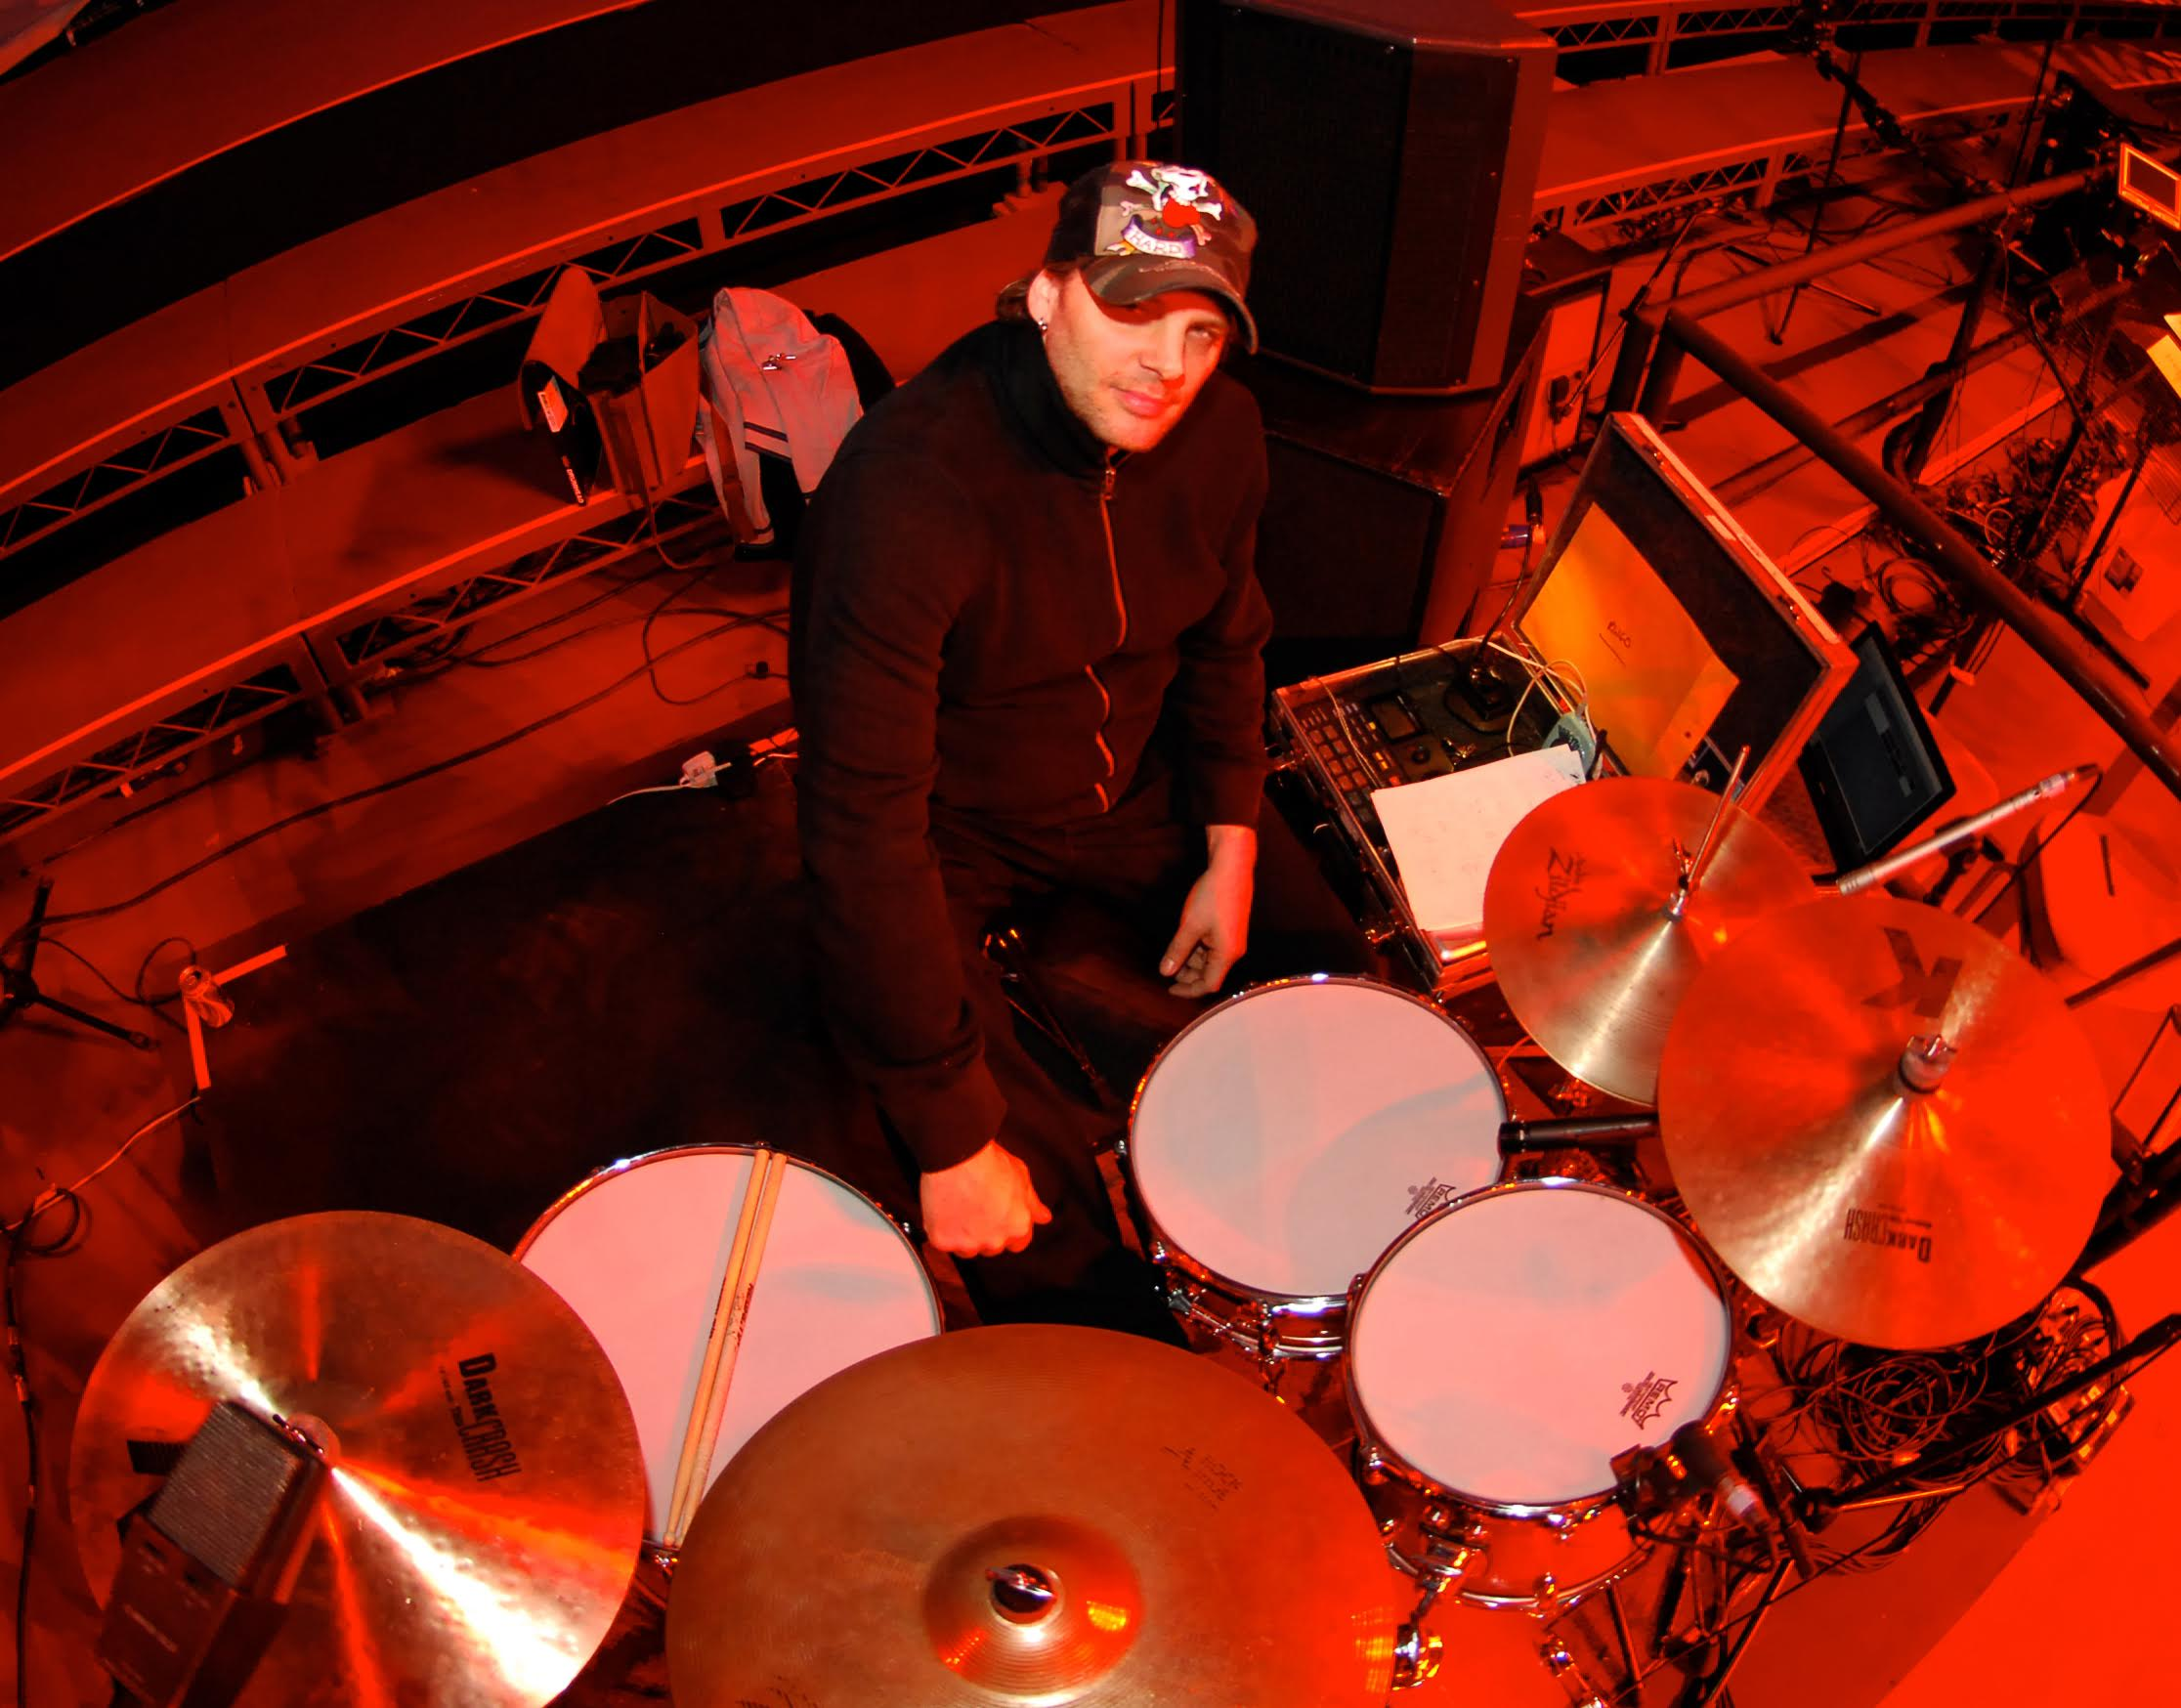 randy-cooke-the-voice-drummer-live-recording-drums-yamaha-sir-2